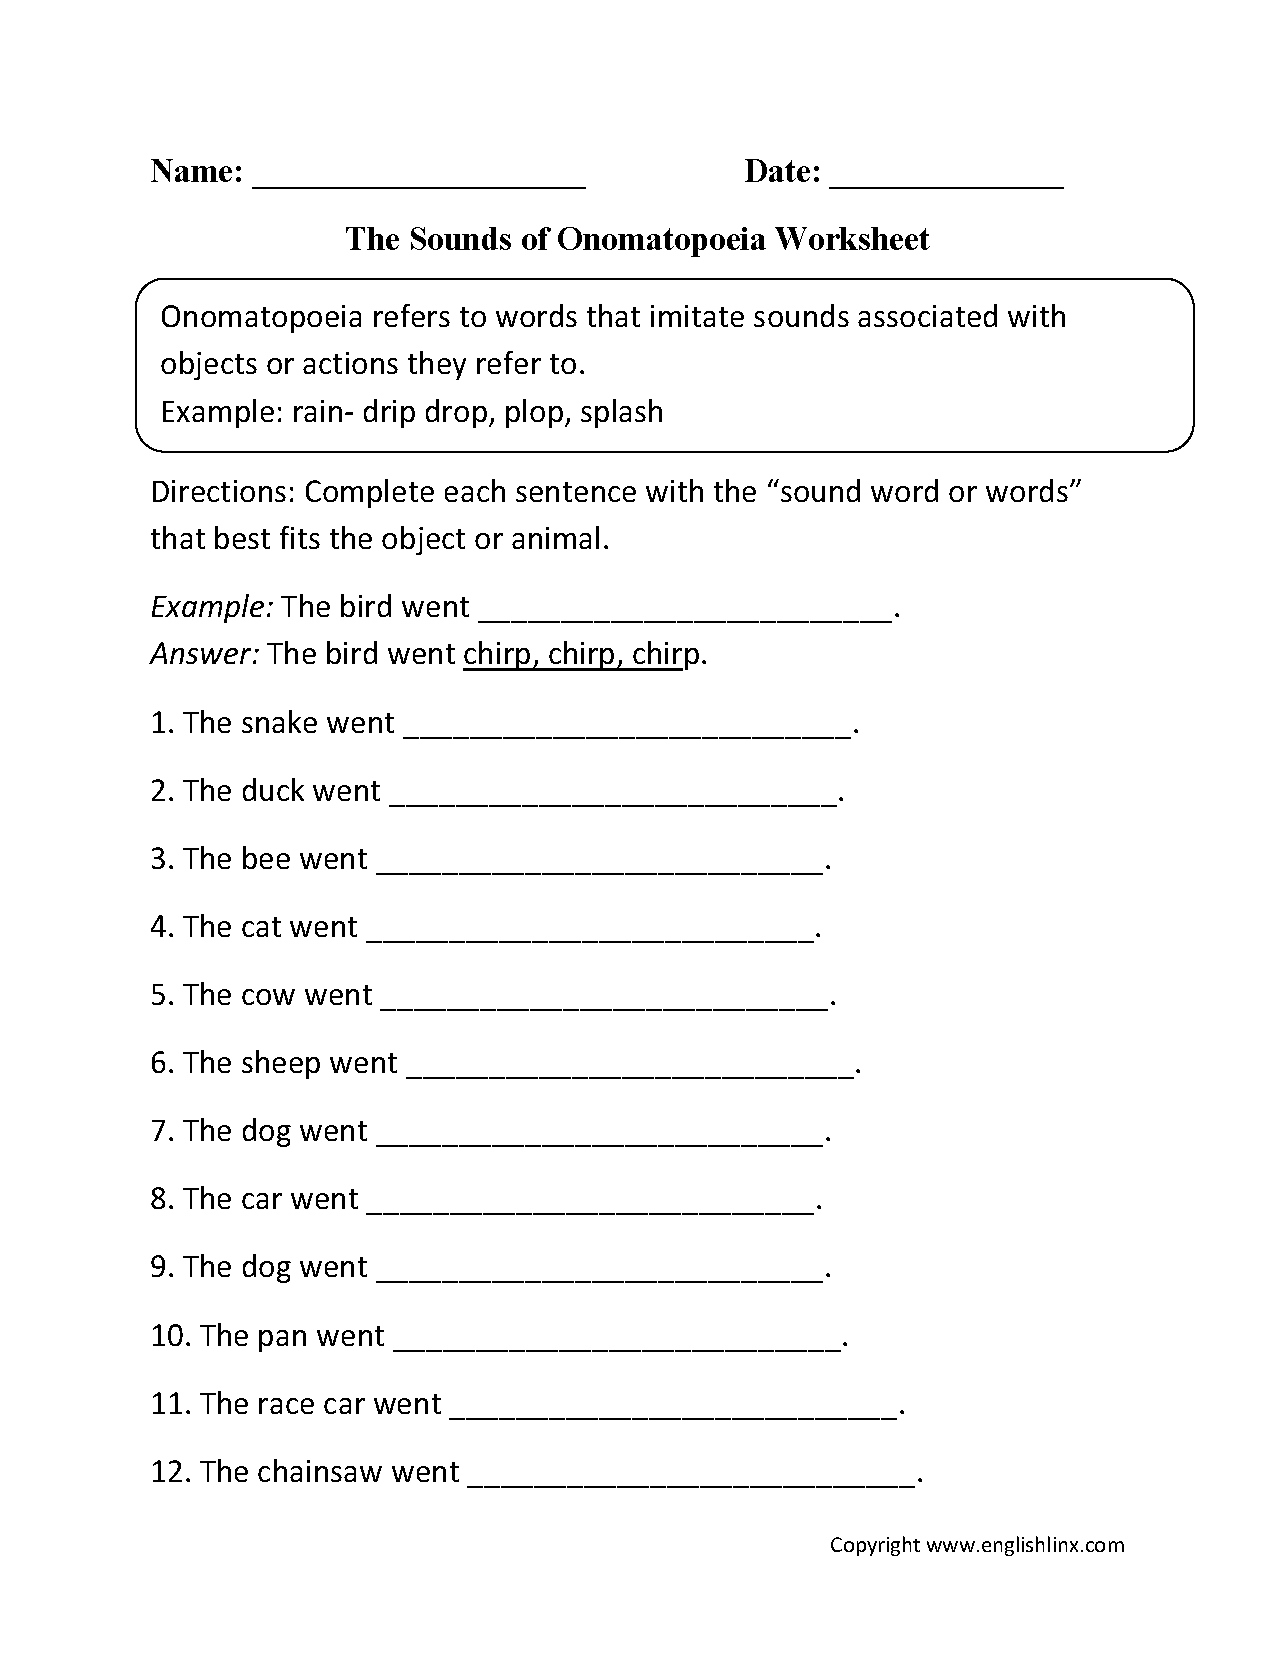 Aldiablosus  Unusual Englishlinxcom  Onomatopoeia Worksheets With Excellent Worksheet With Appealing Sine Cosine Tangent Worksheets Also Rotation Transformation Worksheet In Addition Addition Subtraction Worksheets Third Grade And Learn To Write Cursive Worksheets As Well As Trig Worksheets With Answers Additionally Expository Essay Worksheet From Englishlinxcom With Aldiablosus  Excellent Englishlinxcom  Onomatopoeia Worksheets With Appealing Worksheet And Unusual Sine Cosine Tangent Worksheets Also Rotation Transformation Worksheet In Addition Addition Subtraction Worksheets Third Grade From Englishlinxcom